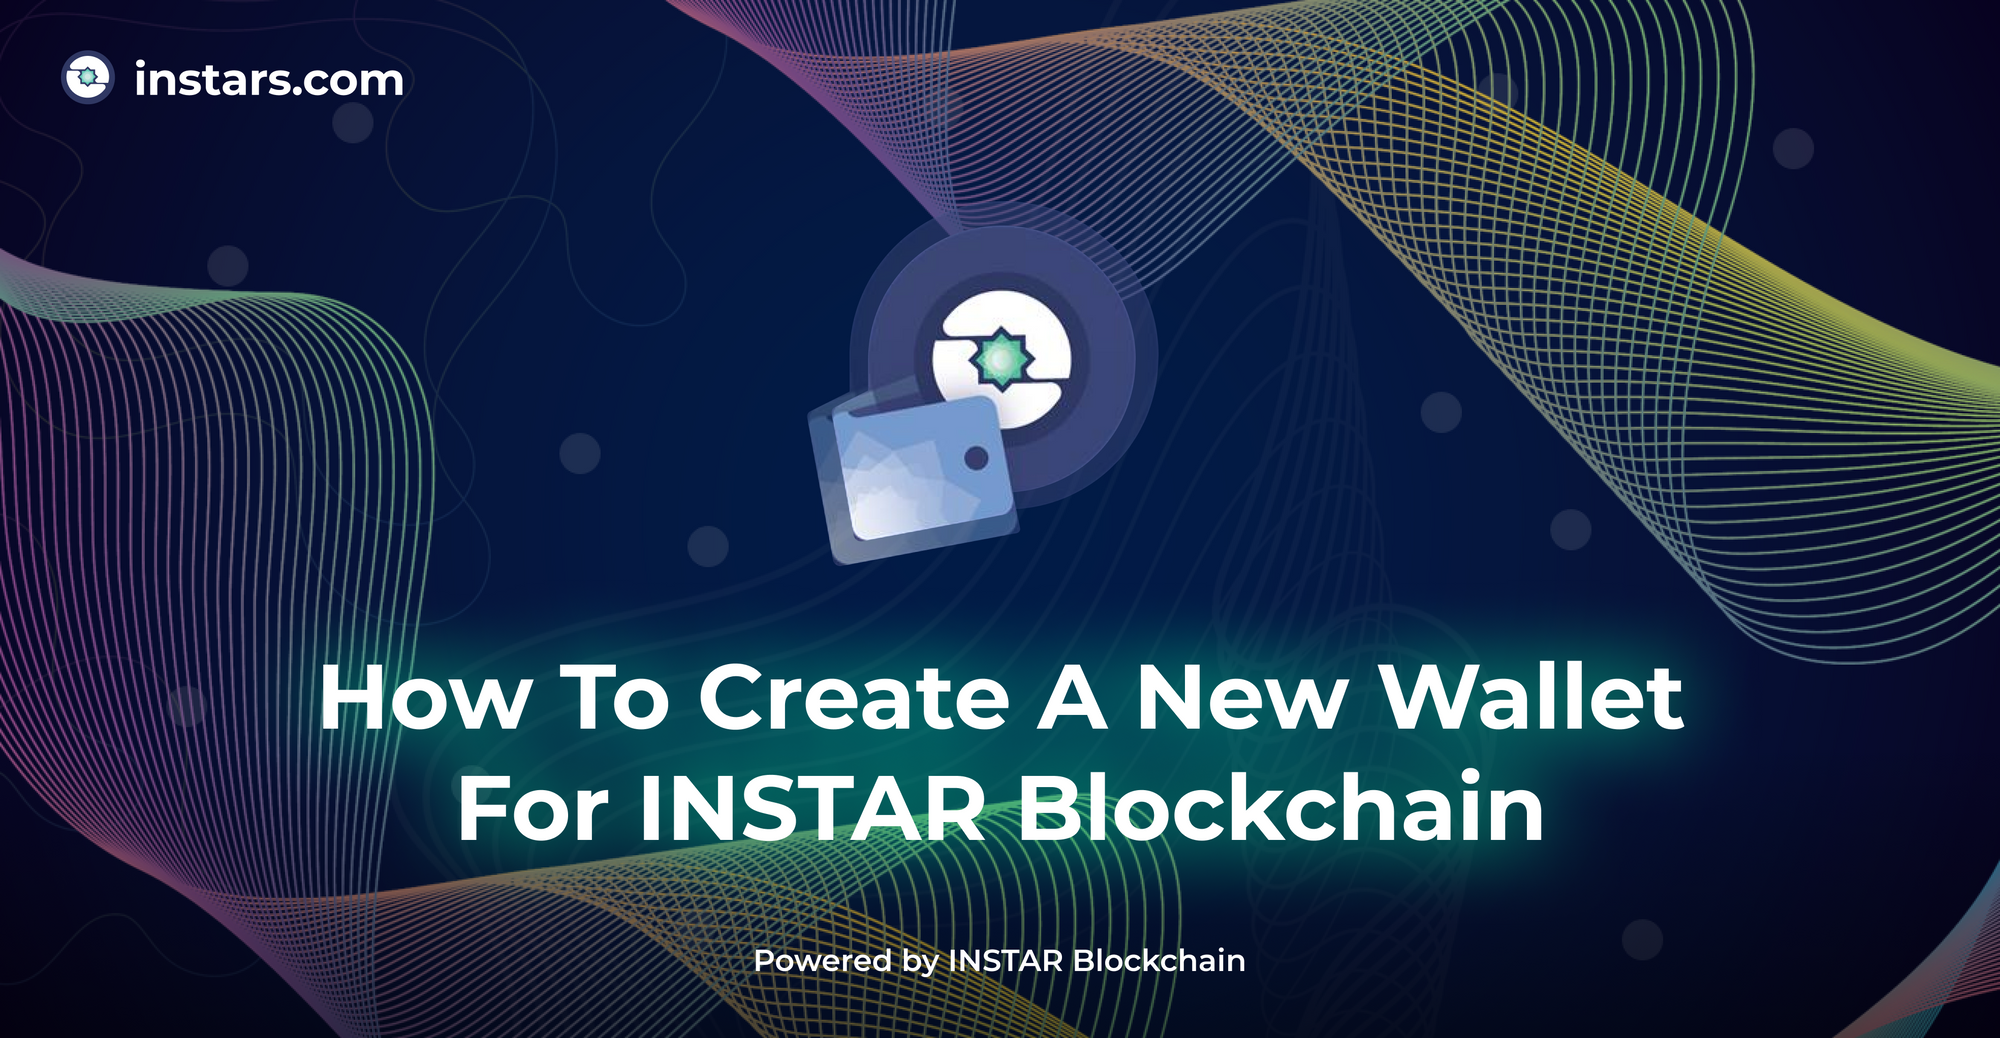 Creating new wallets on INSTAR Blockchain to store your tokens